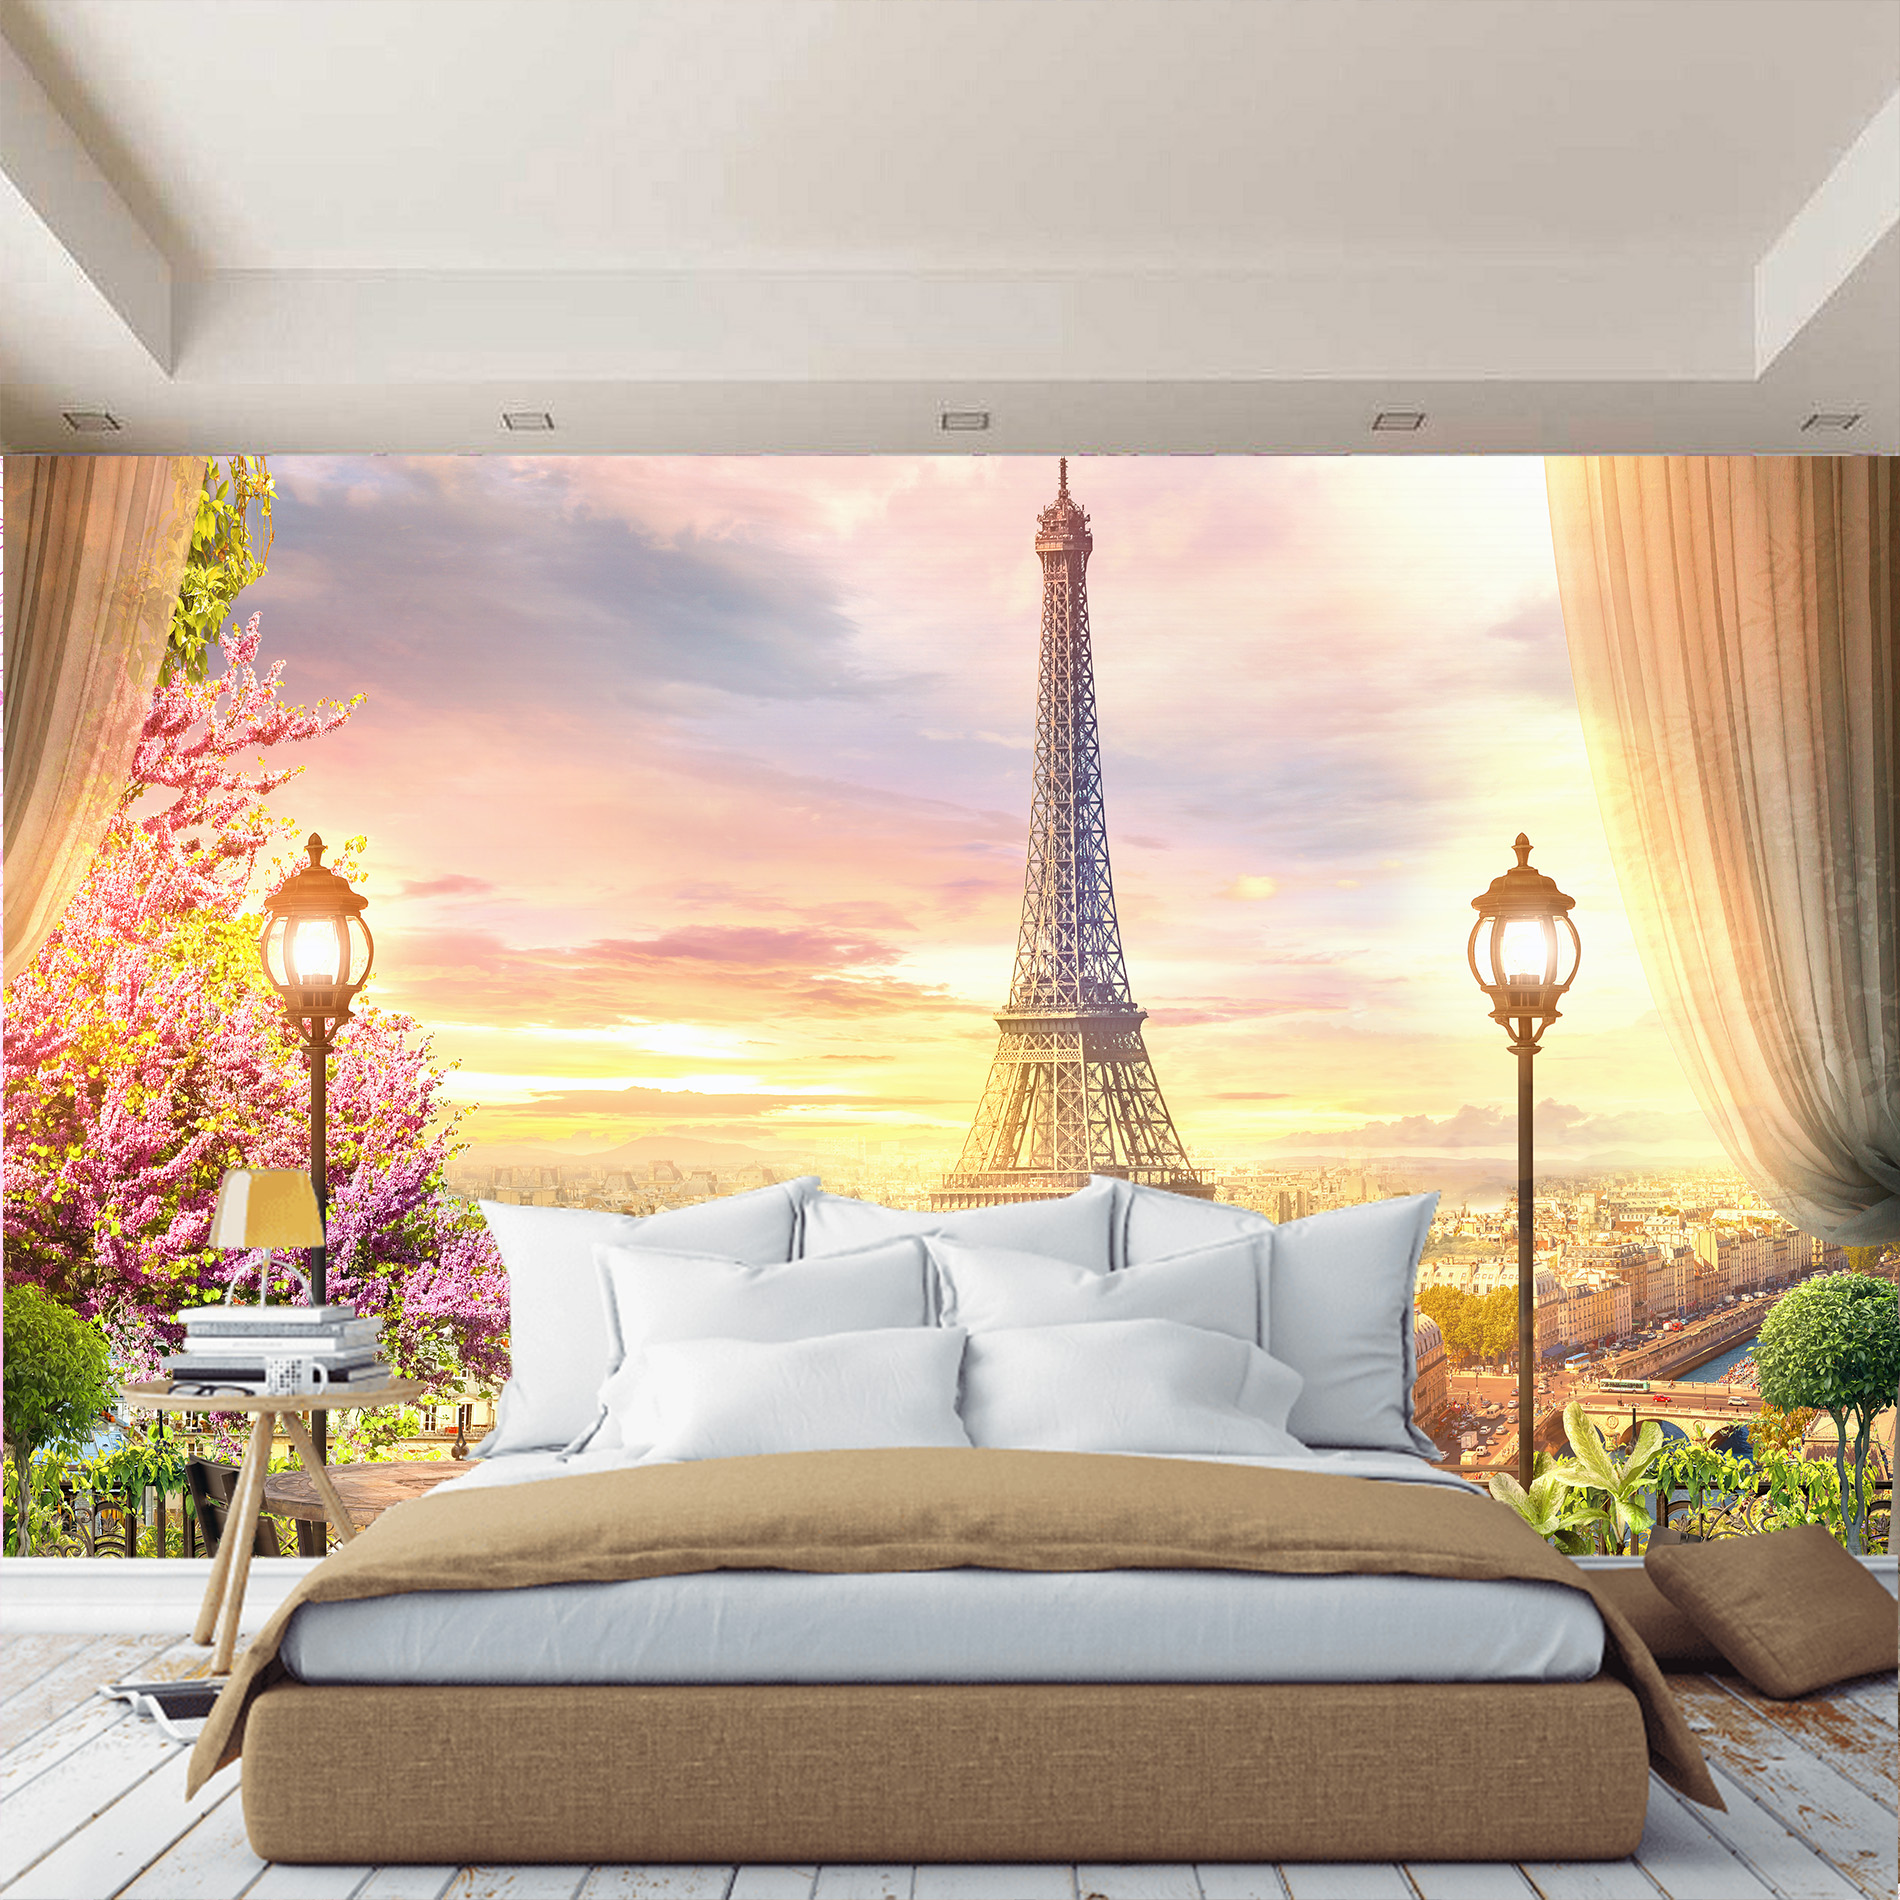 Eiffel Tower, Paris Wall Mural, Wallpaper For Hall, Kitchen, Bedrooms, Murals Expanding Space